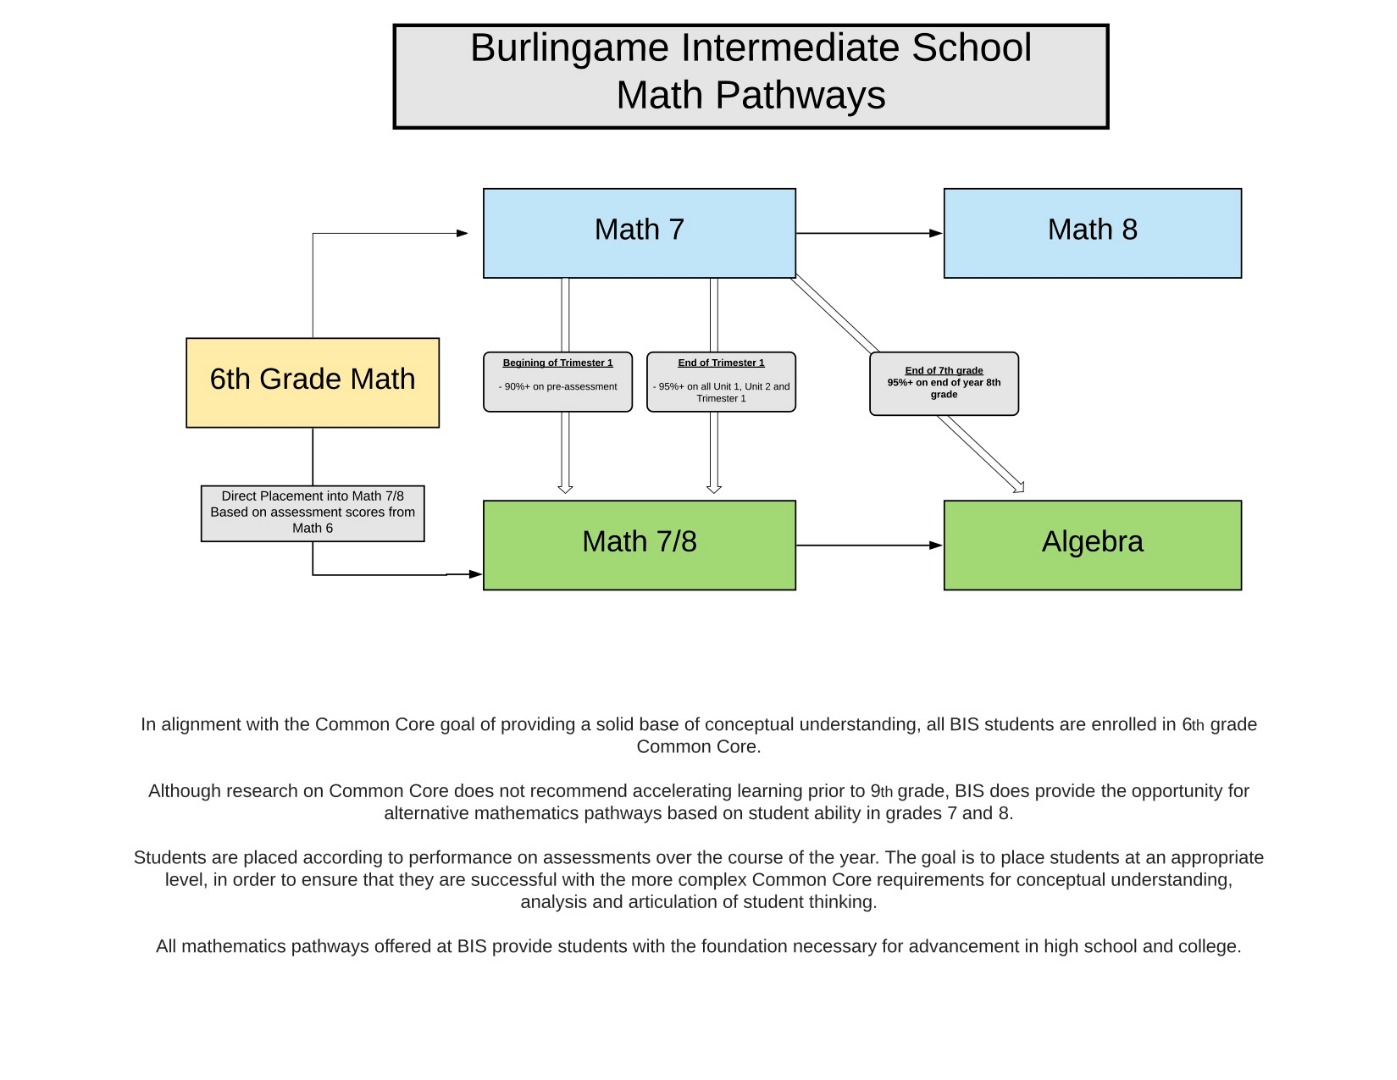 Flowchart of Math at BIS